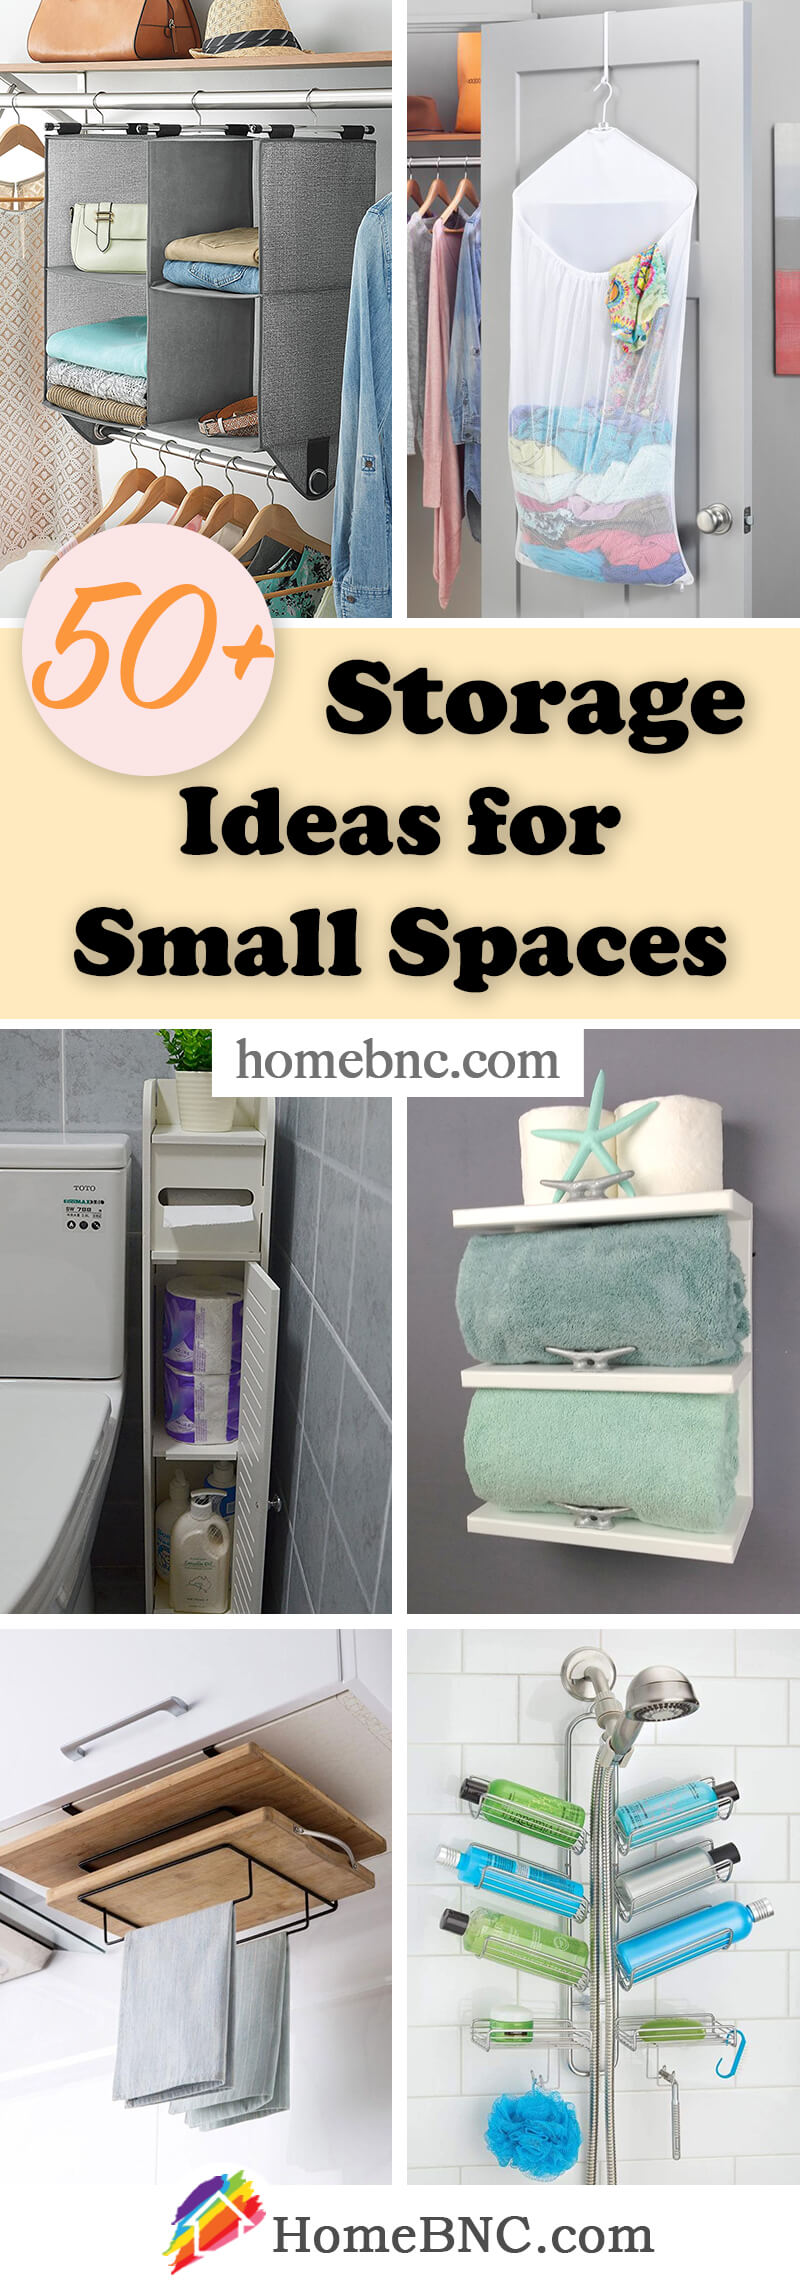 50 Best Storage Ideas And Projects For Small Spaces In 2021